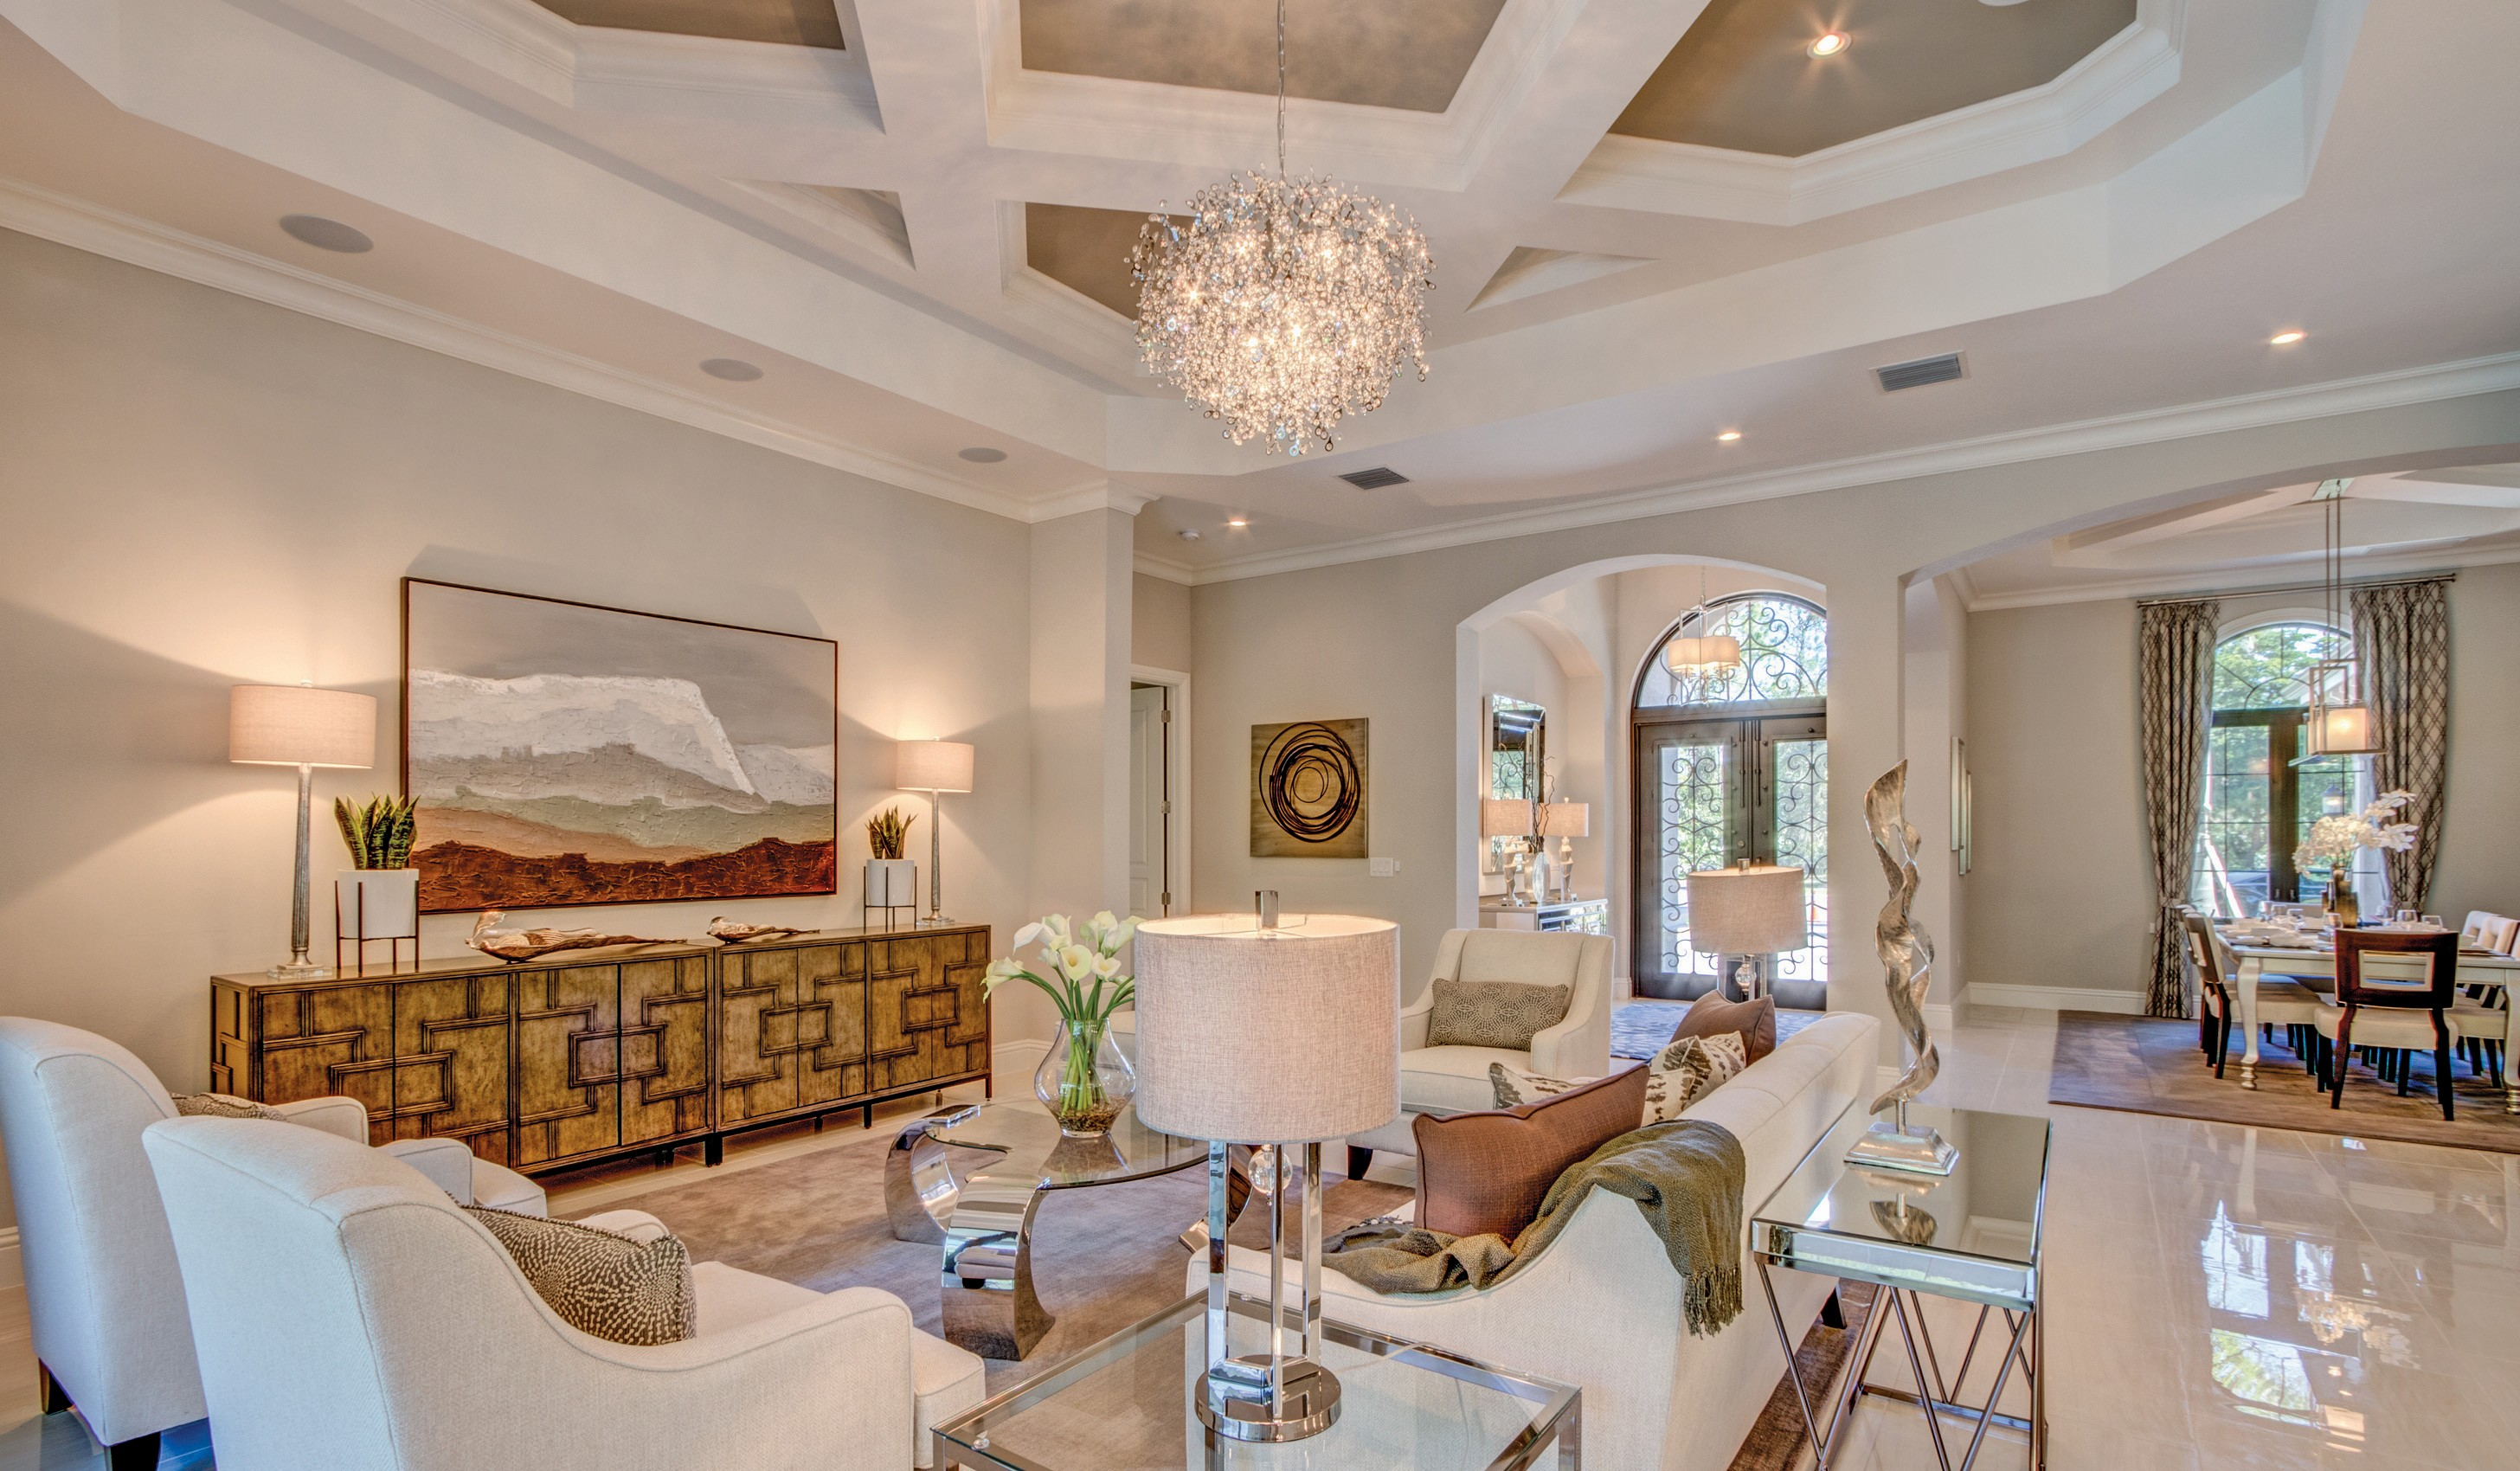 Top Emerald Homes New Ventalo Model Features An Inviting Great Room With Intricate Ceiling